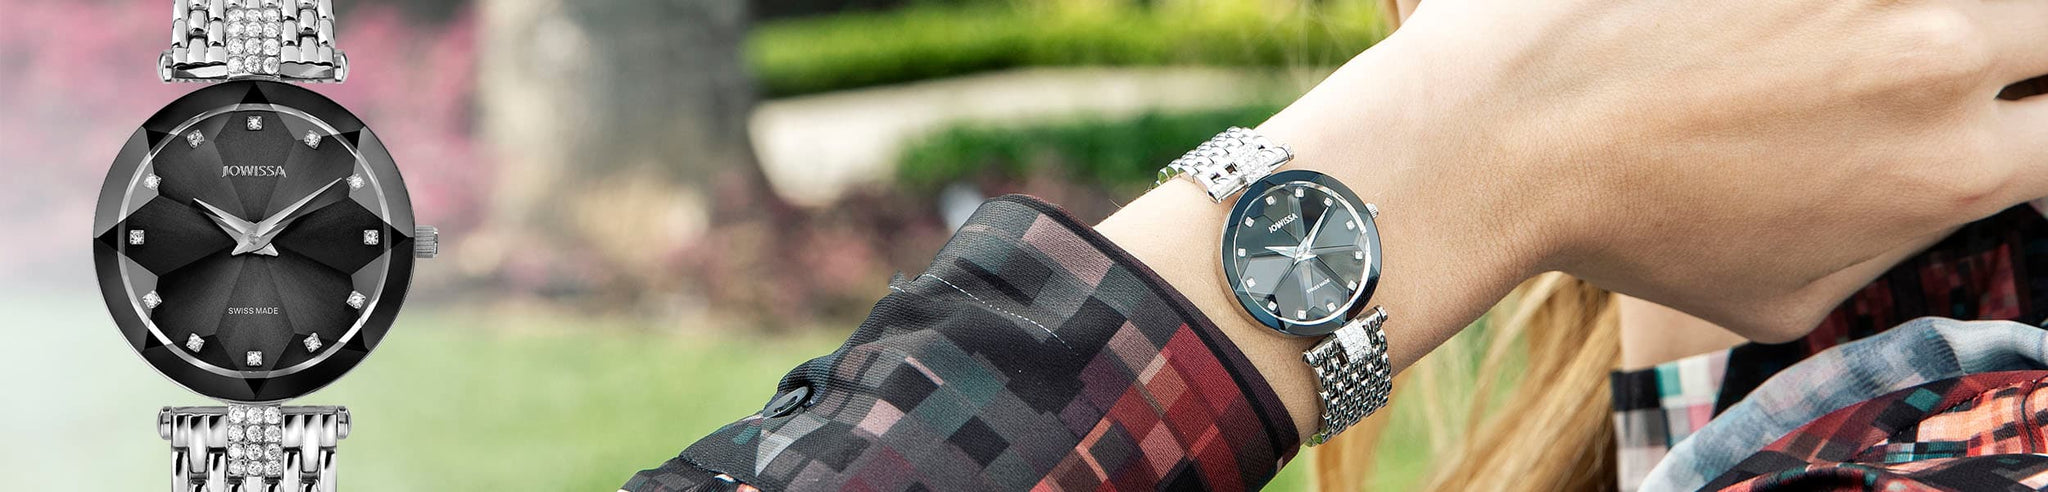 Swiss Watches for Women by Jowissa Desktop Hero